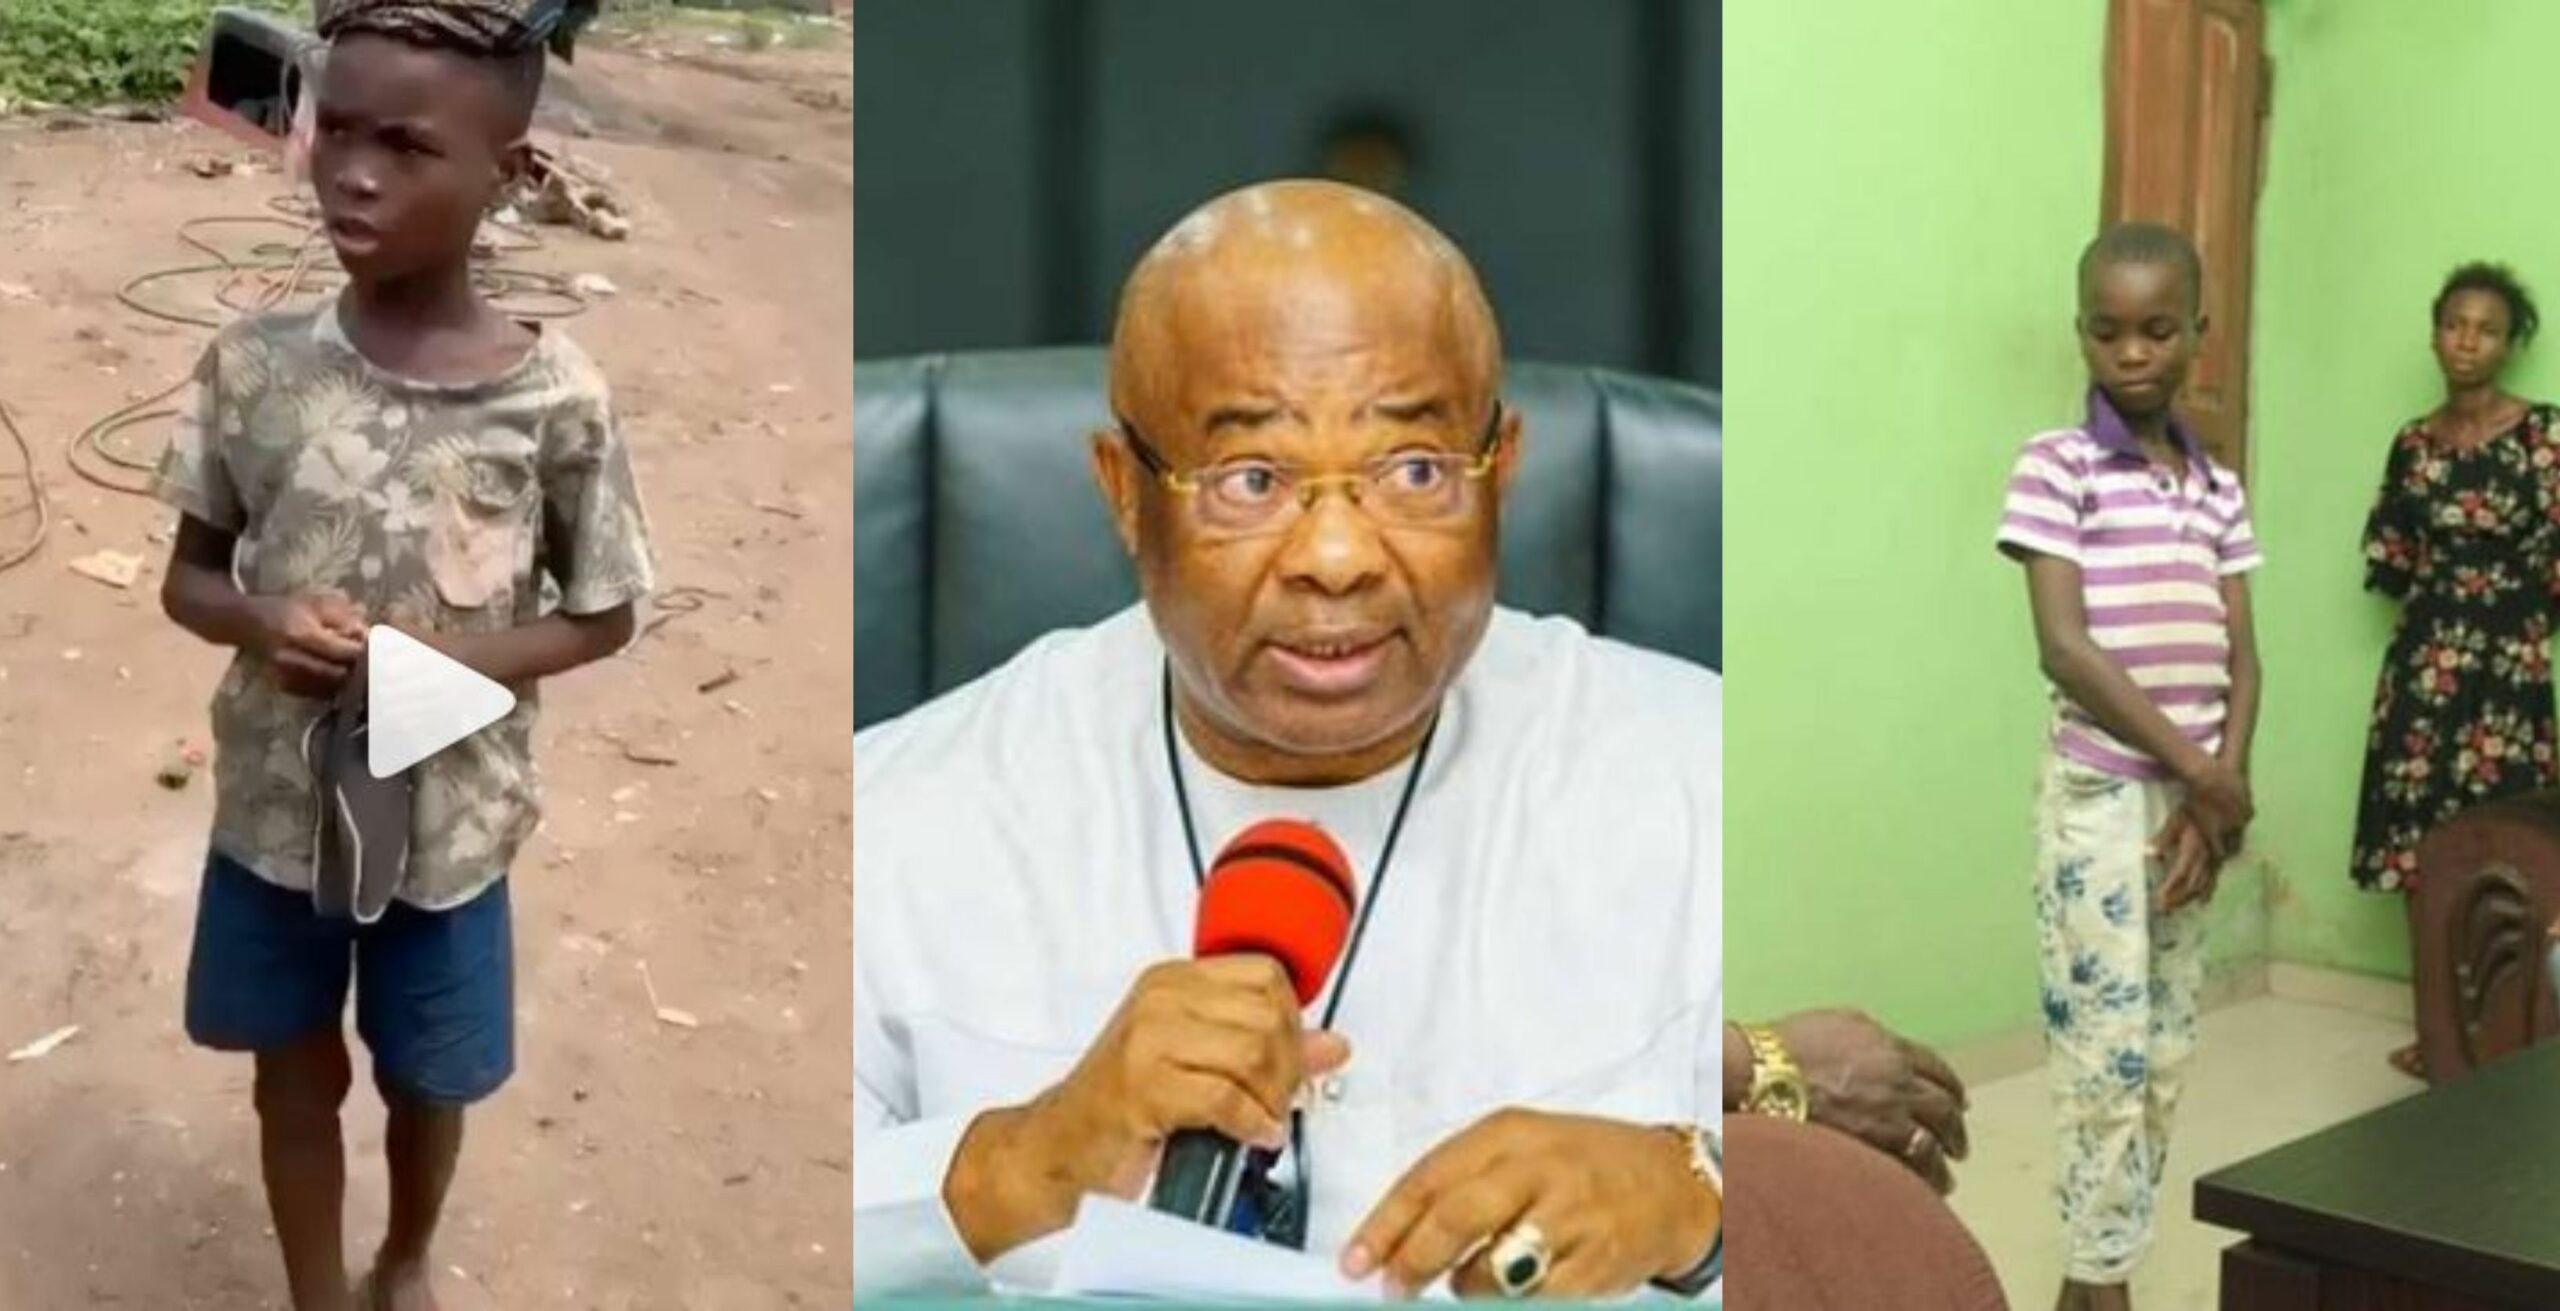 Imo State Governor, Hope Uzodinma adopts 9-year-old coconut seller singing in viral video